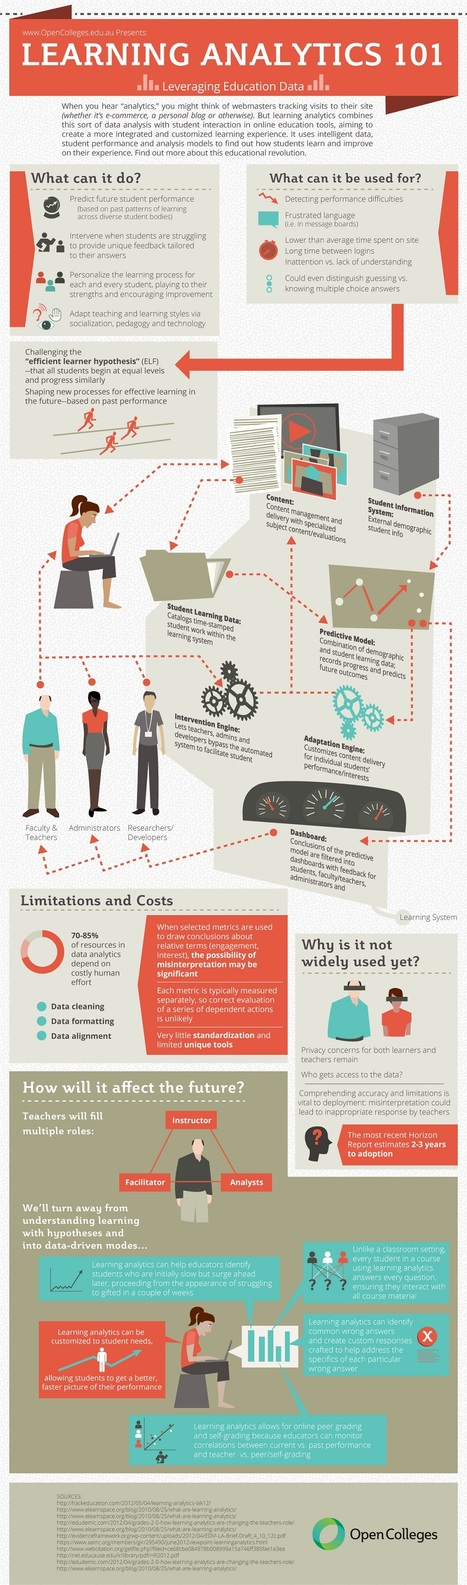 Utilidad de las Learning Analytics #infografia #infographic #education | Innovación docente universidad | Scoop.it